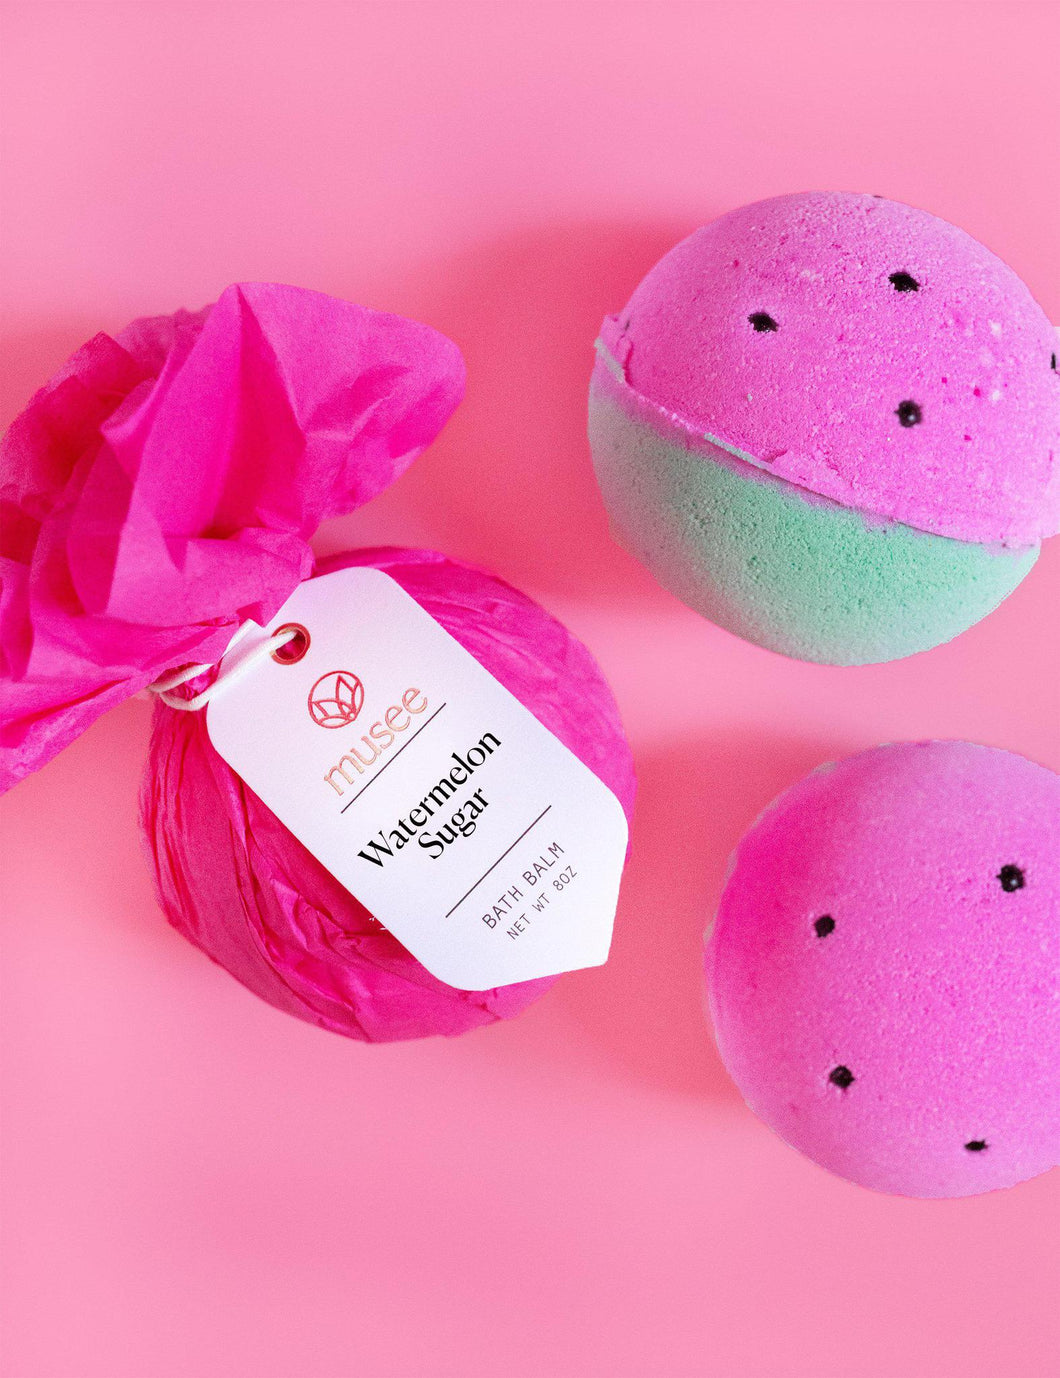 Watermelon Sugar Bath Bomb